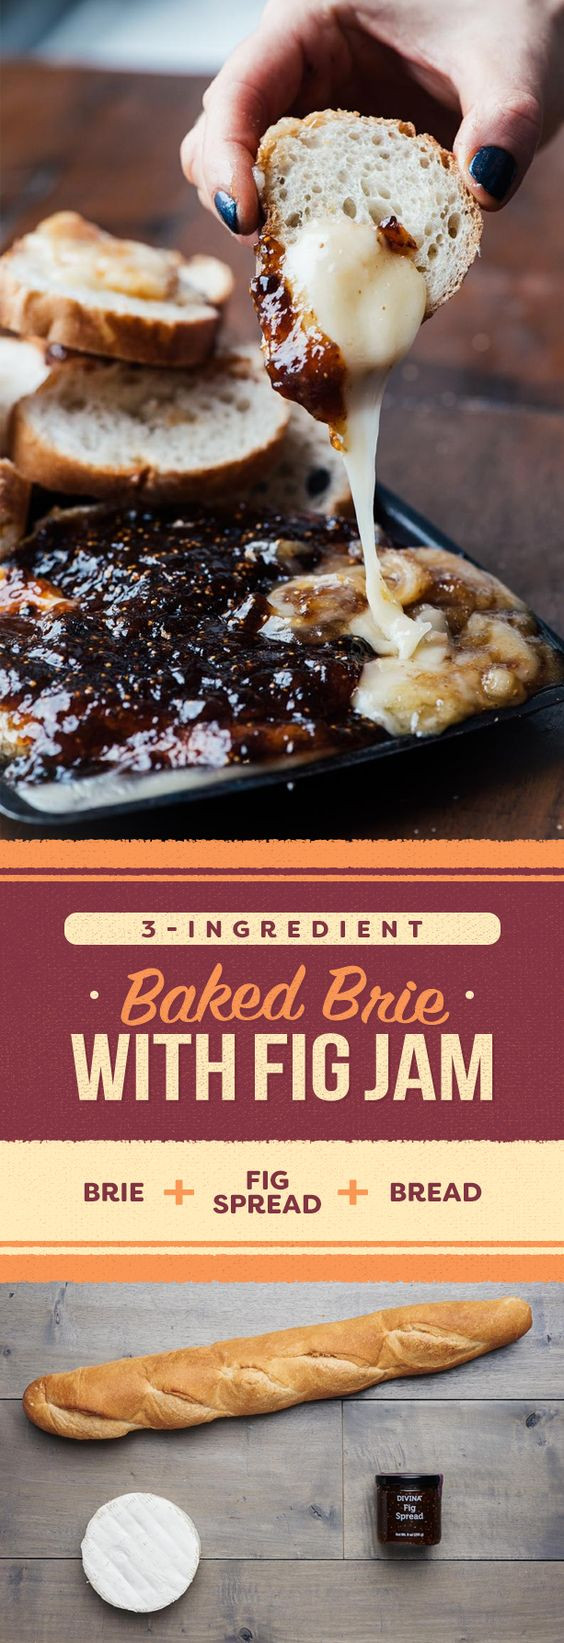 Thanksgiving 2019 Appetizers  Baked Brie with Fig Jam in 2019 food